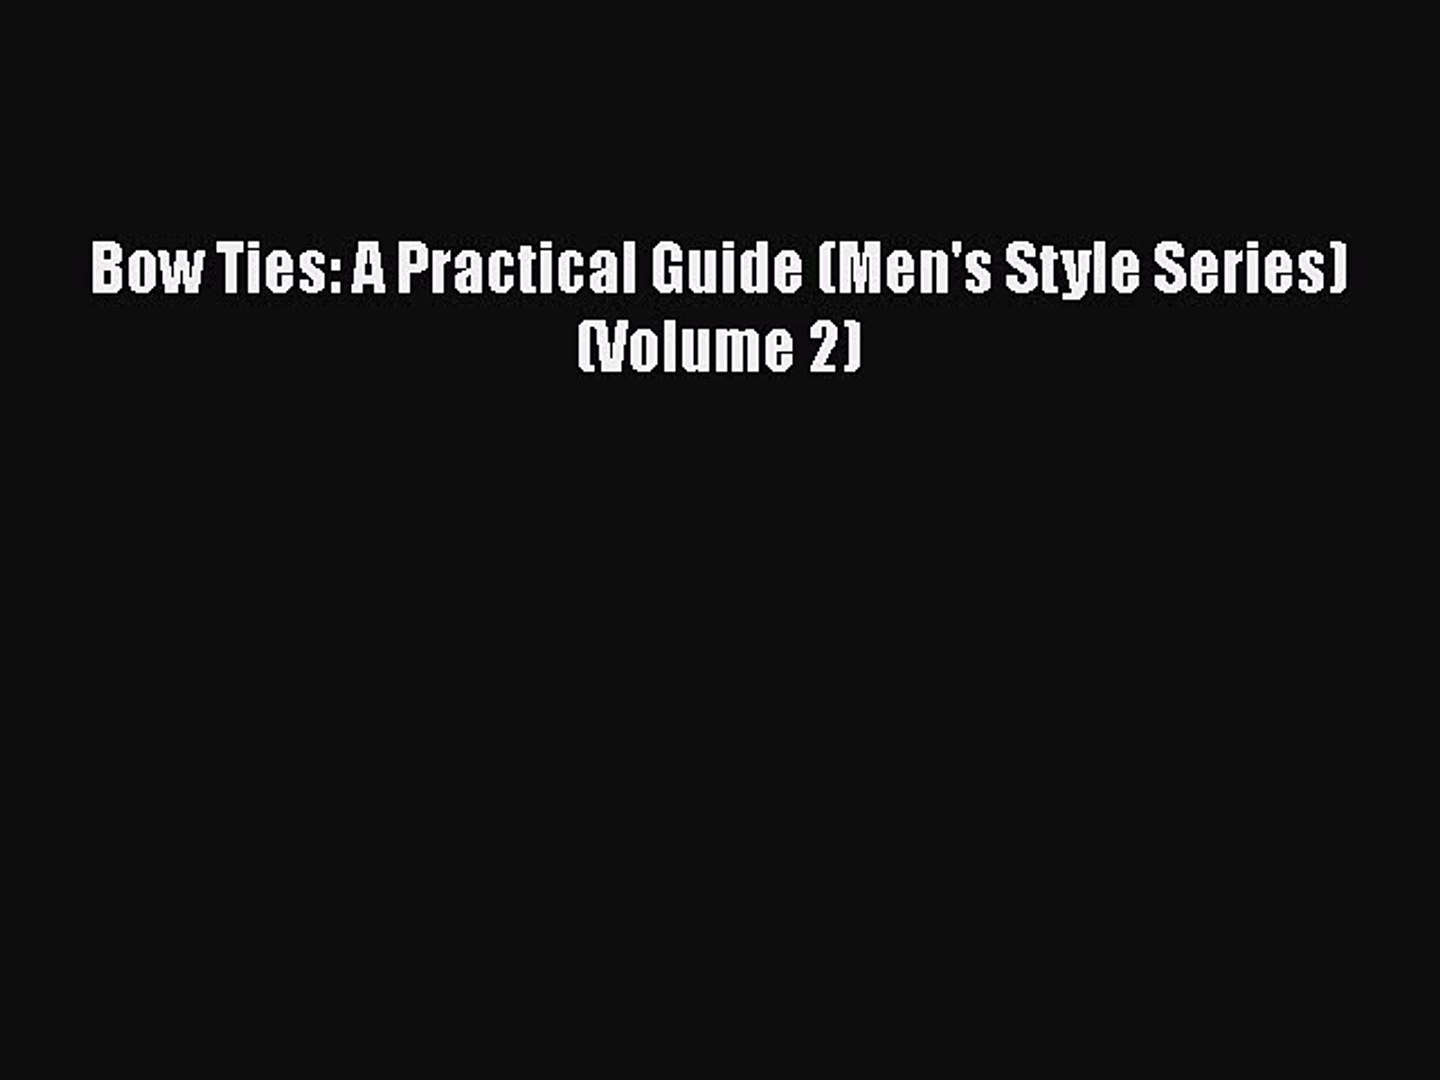 Bow Ties: A Practical Guide (Men's Style Series) (Volume 2)Download Bow Ties: A Practical Guide